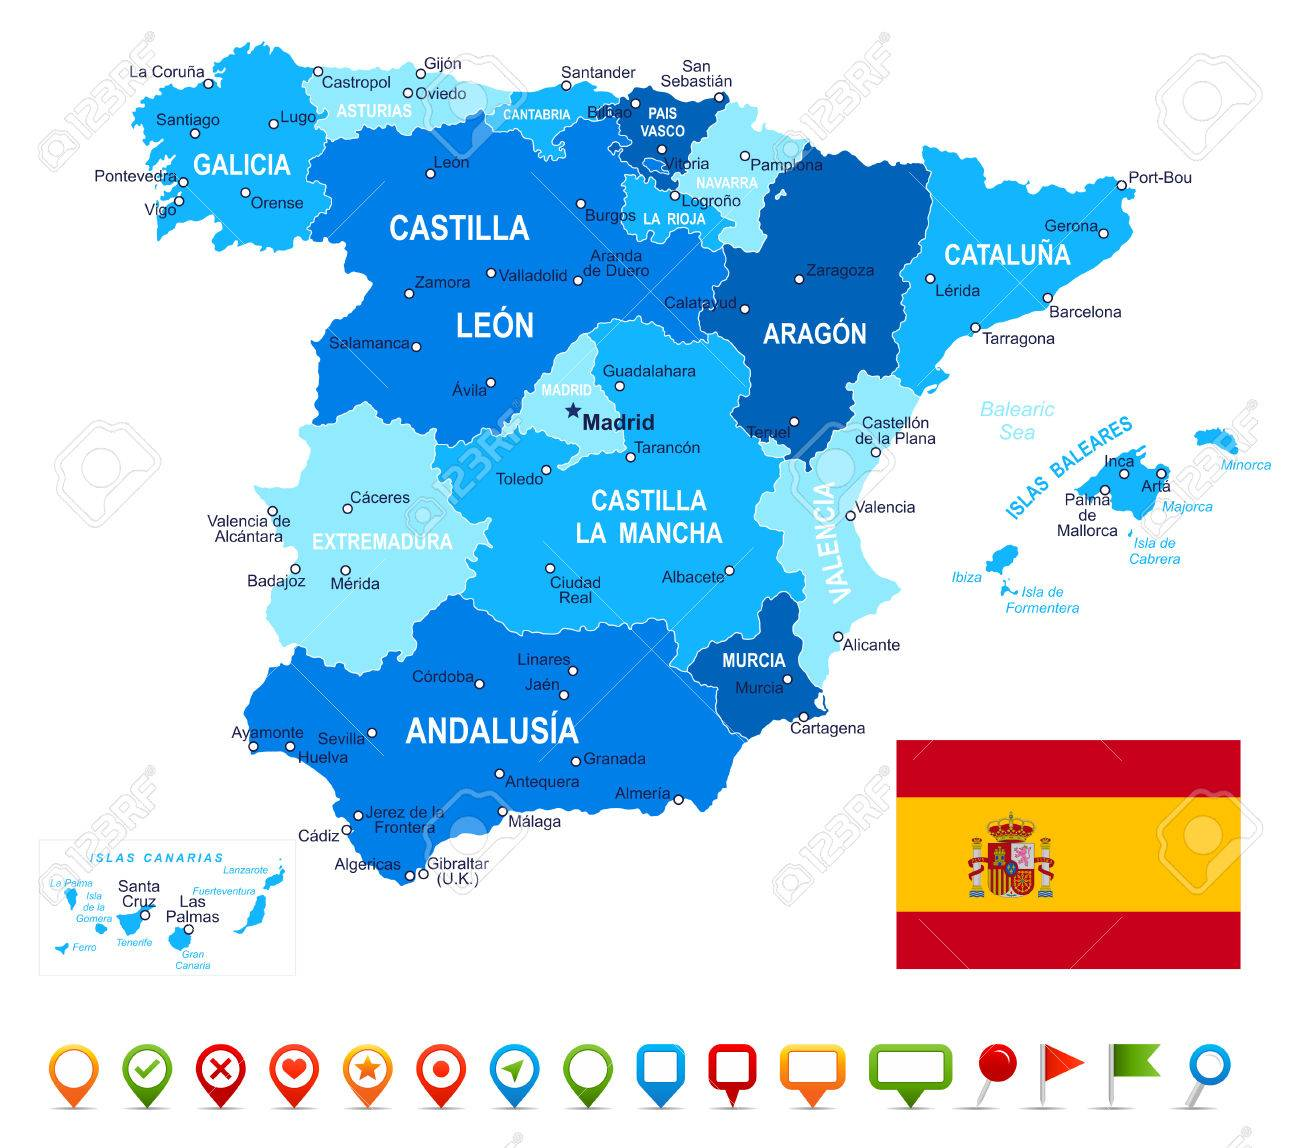 Spain Map Flag.Spain Map Flag And Navigation Icons Illustration Image Contains